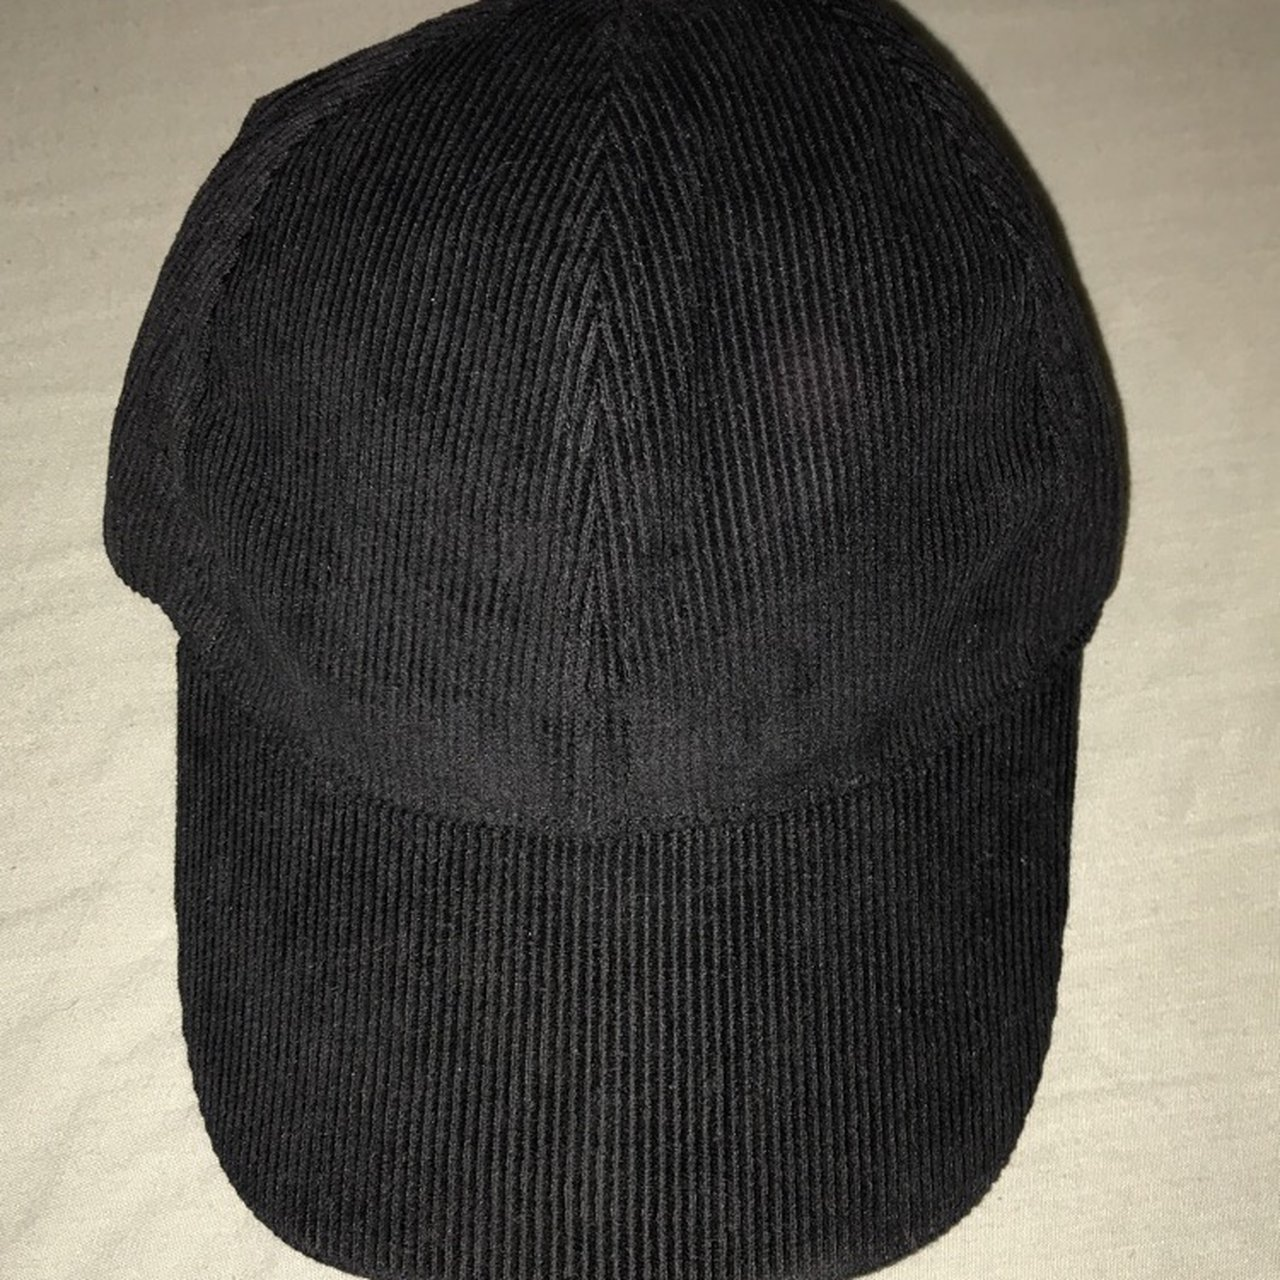 debc834e26d brand new black corduroy hat. one size fits all. perfect - Depop